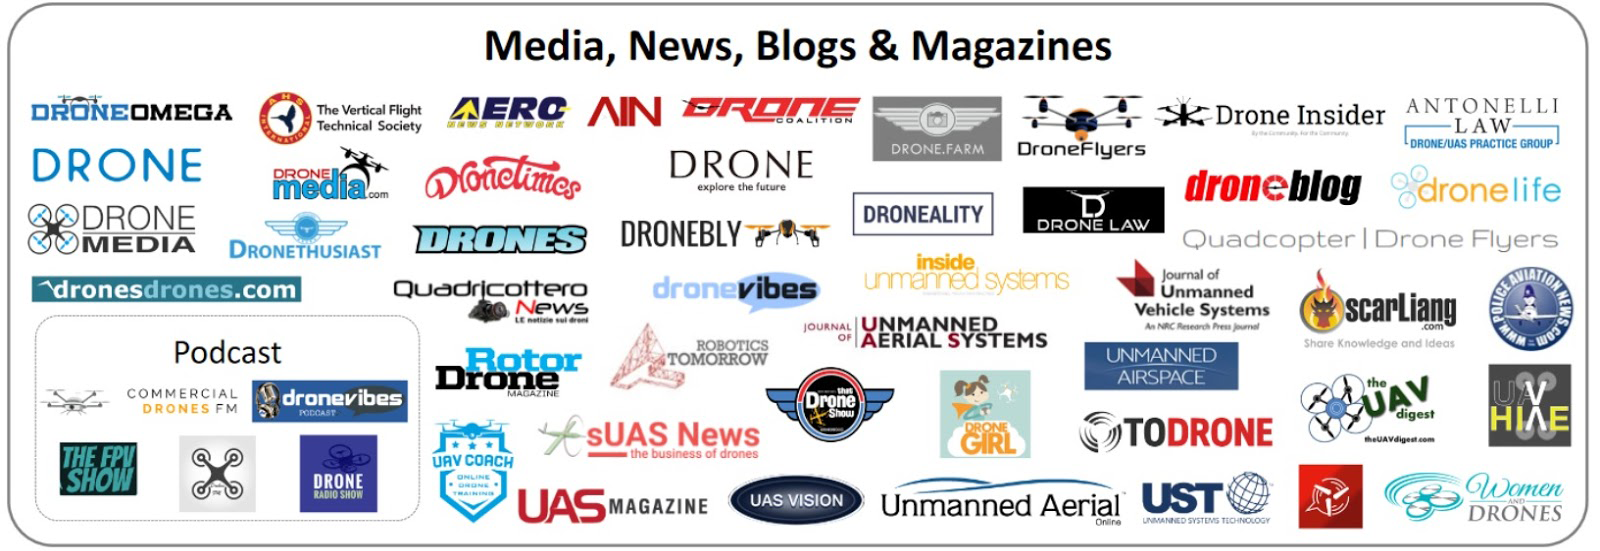 Droni - Media, news, Blogs & Magazines - Fonte: DRONE INDUSTRY INSIGHTS - www.droneii.com